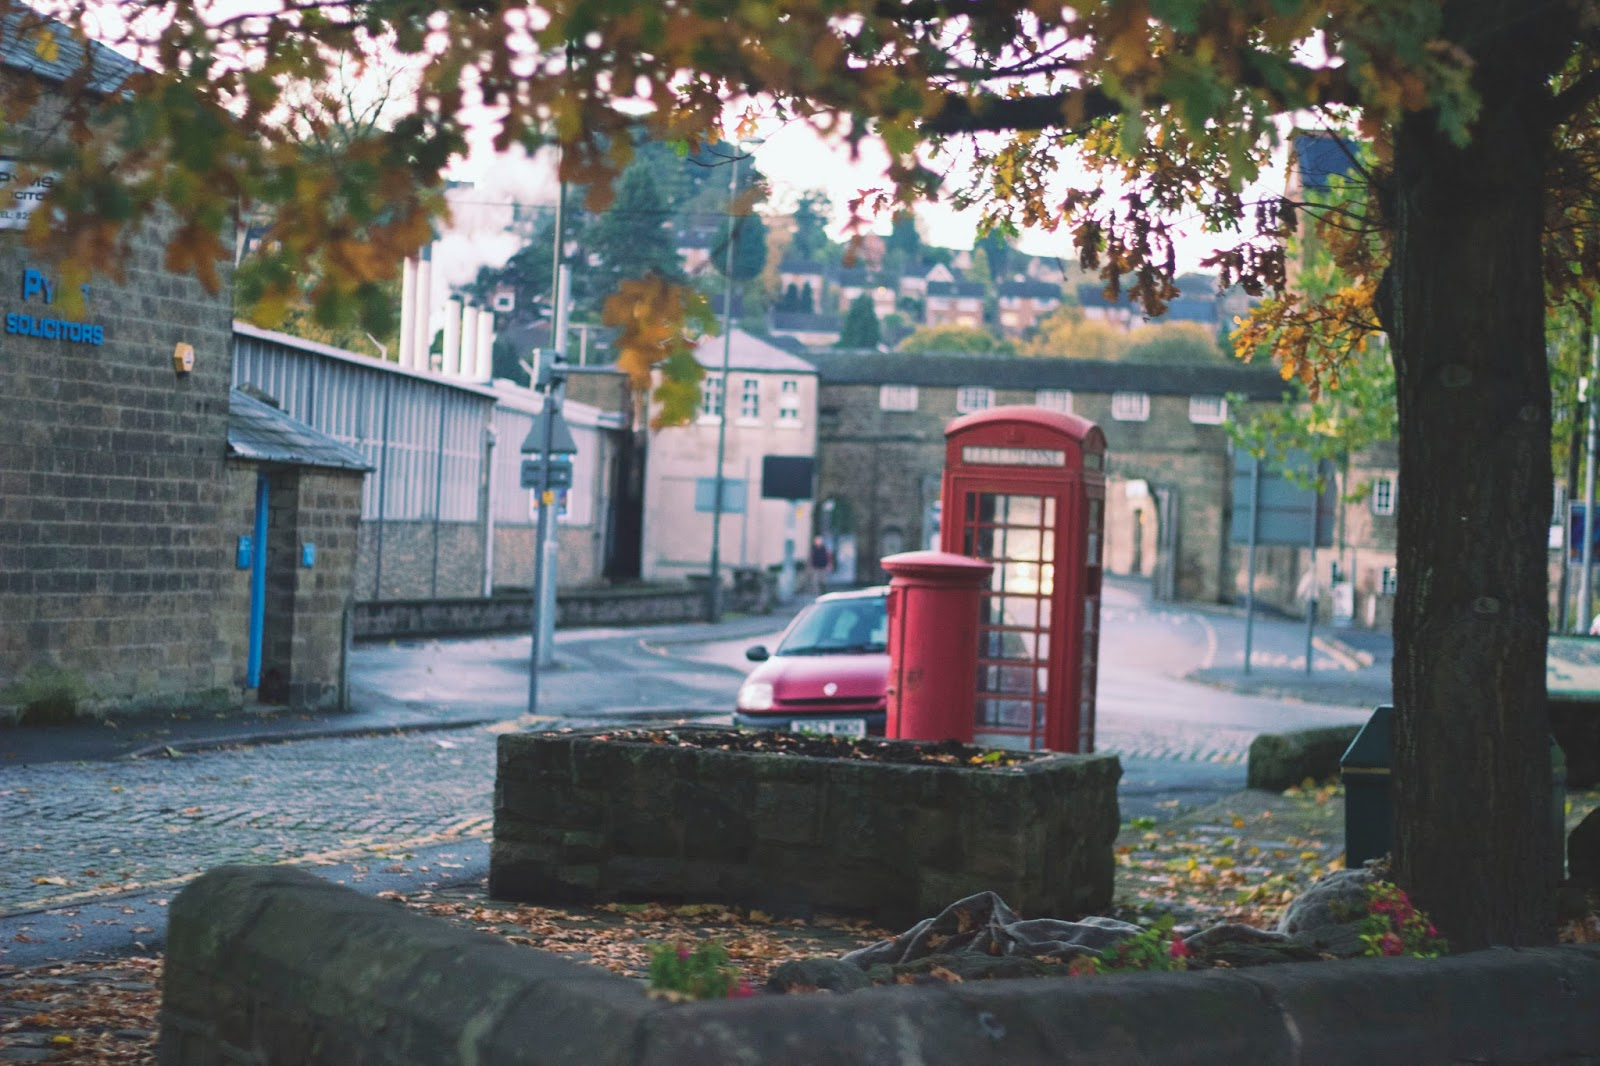 Belper, Derbyshire, The Triangle Belper, British Telephone Box, Traditional Phone Box, BT Phone Box, Lifestyle Bloggers, Derbyshire Bloggers, Katie Writes,